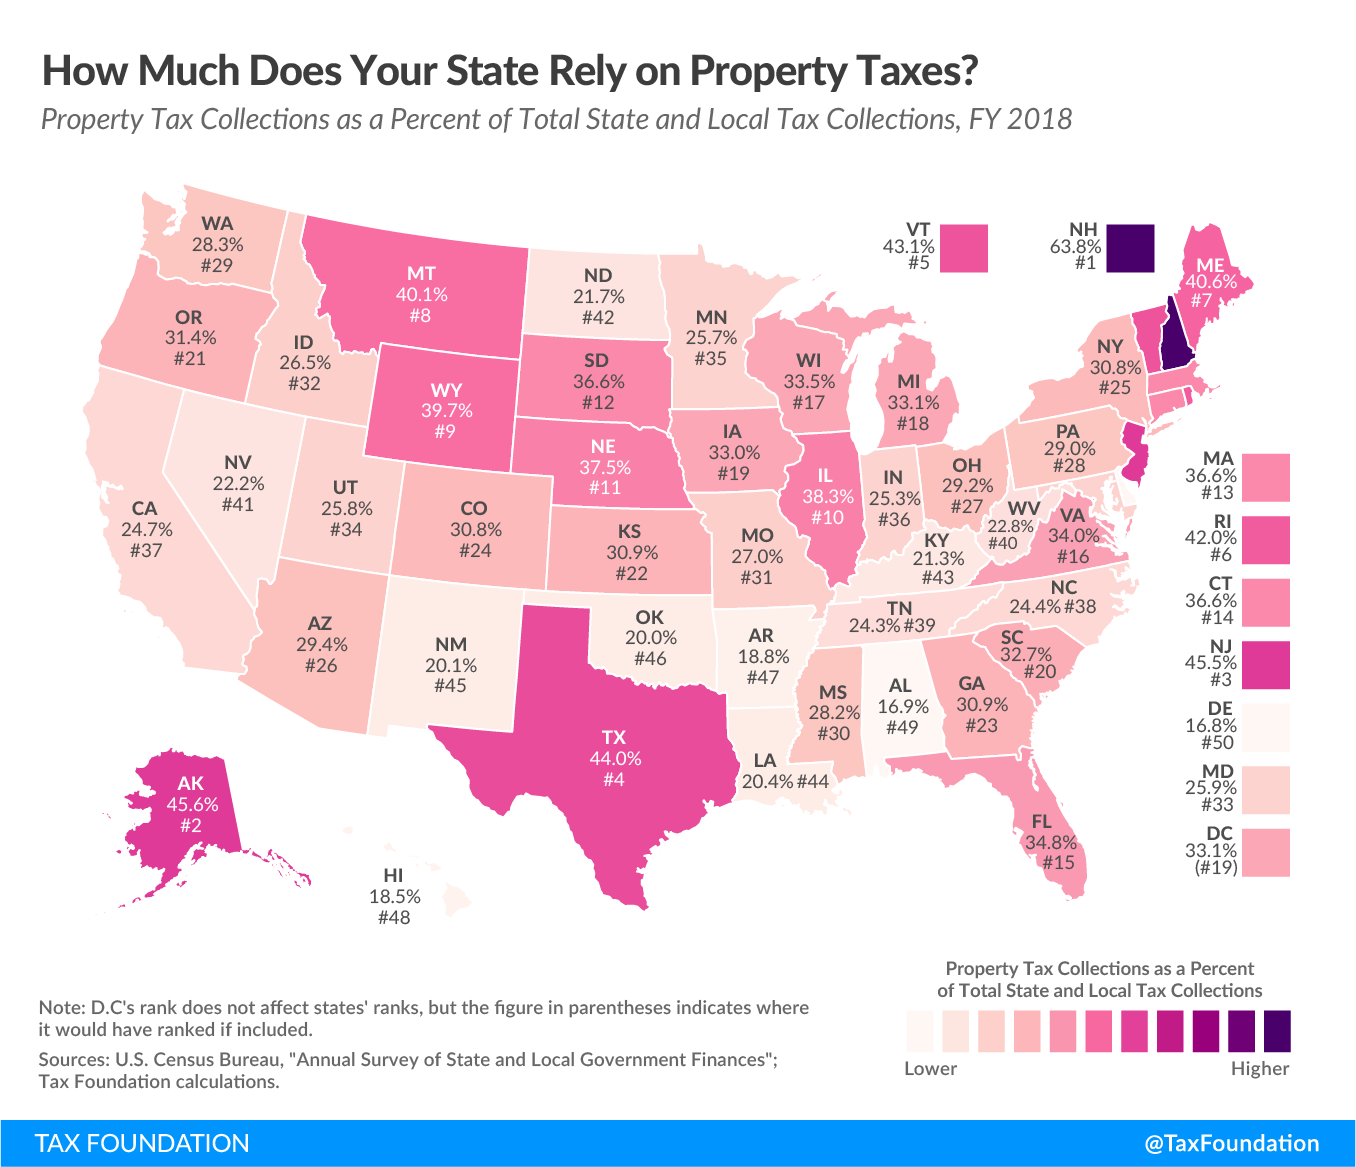 To What Extent Does Your State Rely on Property Taxes?